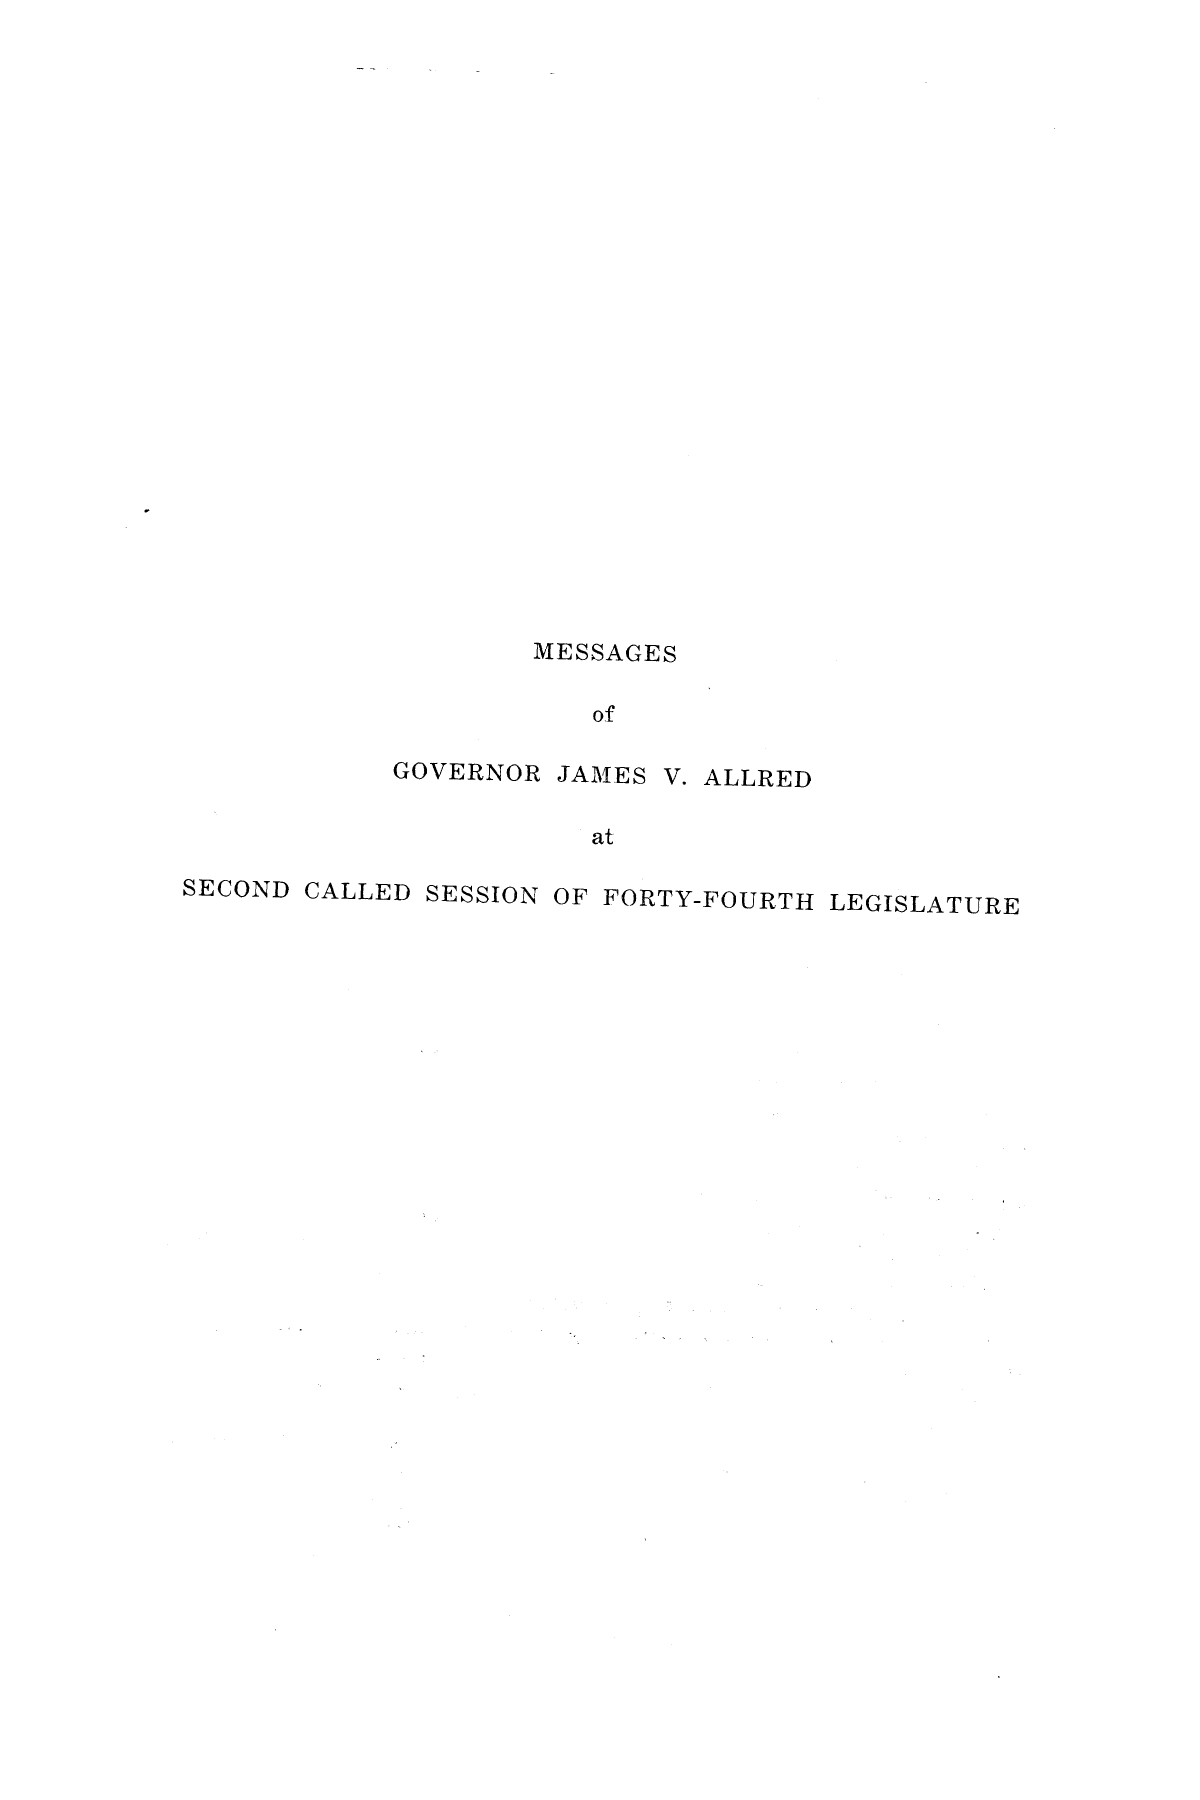 Legislative Messages of Hon. James V. Allred, Governor of Texas 1935-1939                                                                                                      [Sequence #]: 90 of 263